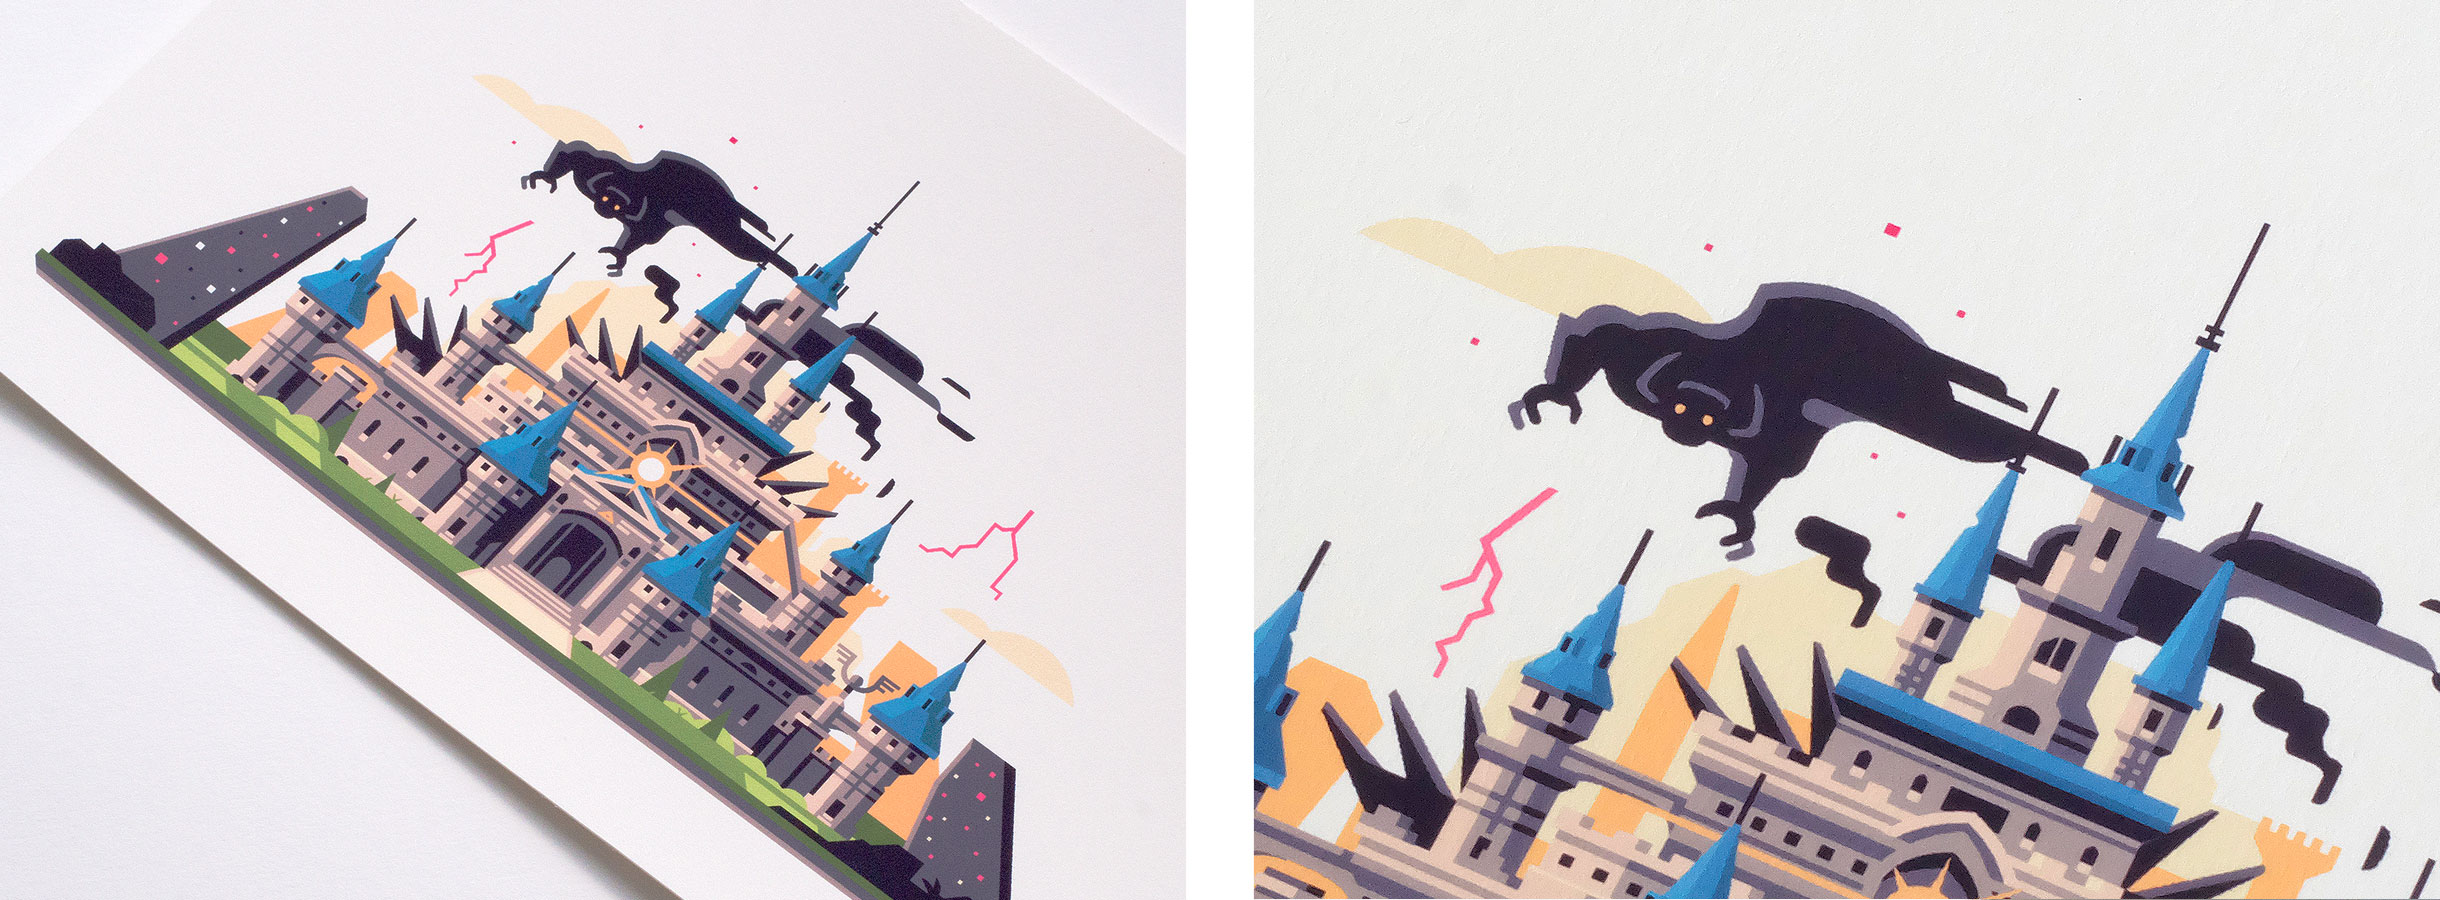 Wild series by Matt Anderson. Inspired by Zelda Breath of the Wild. Print detail of Corrupted Castle (Hyrule Castle / Calamity Ganon).